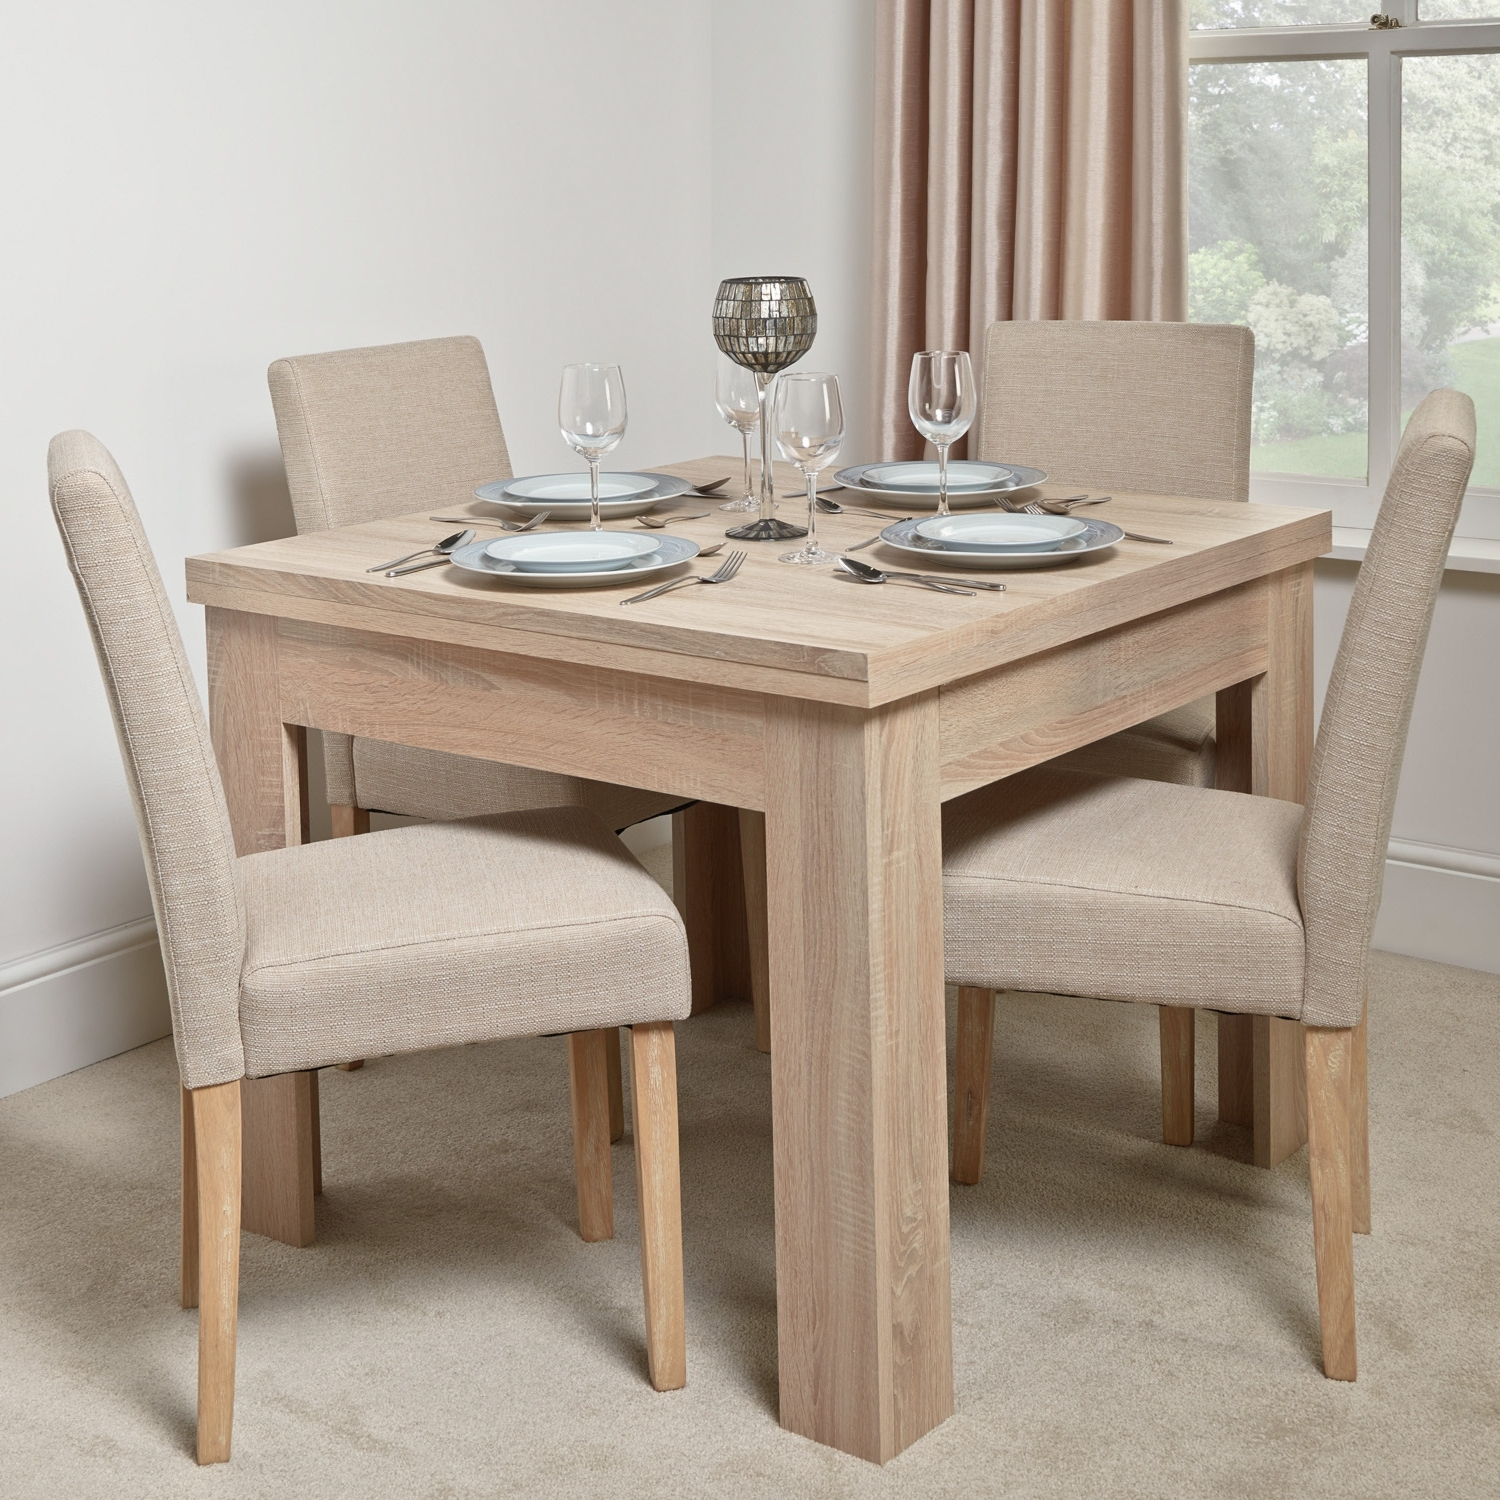 Calpe Flip Extending Dining Table Inside Recent Extending Dining Tables (View 6 of 25)